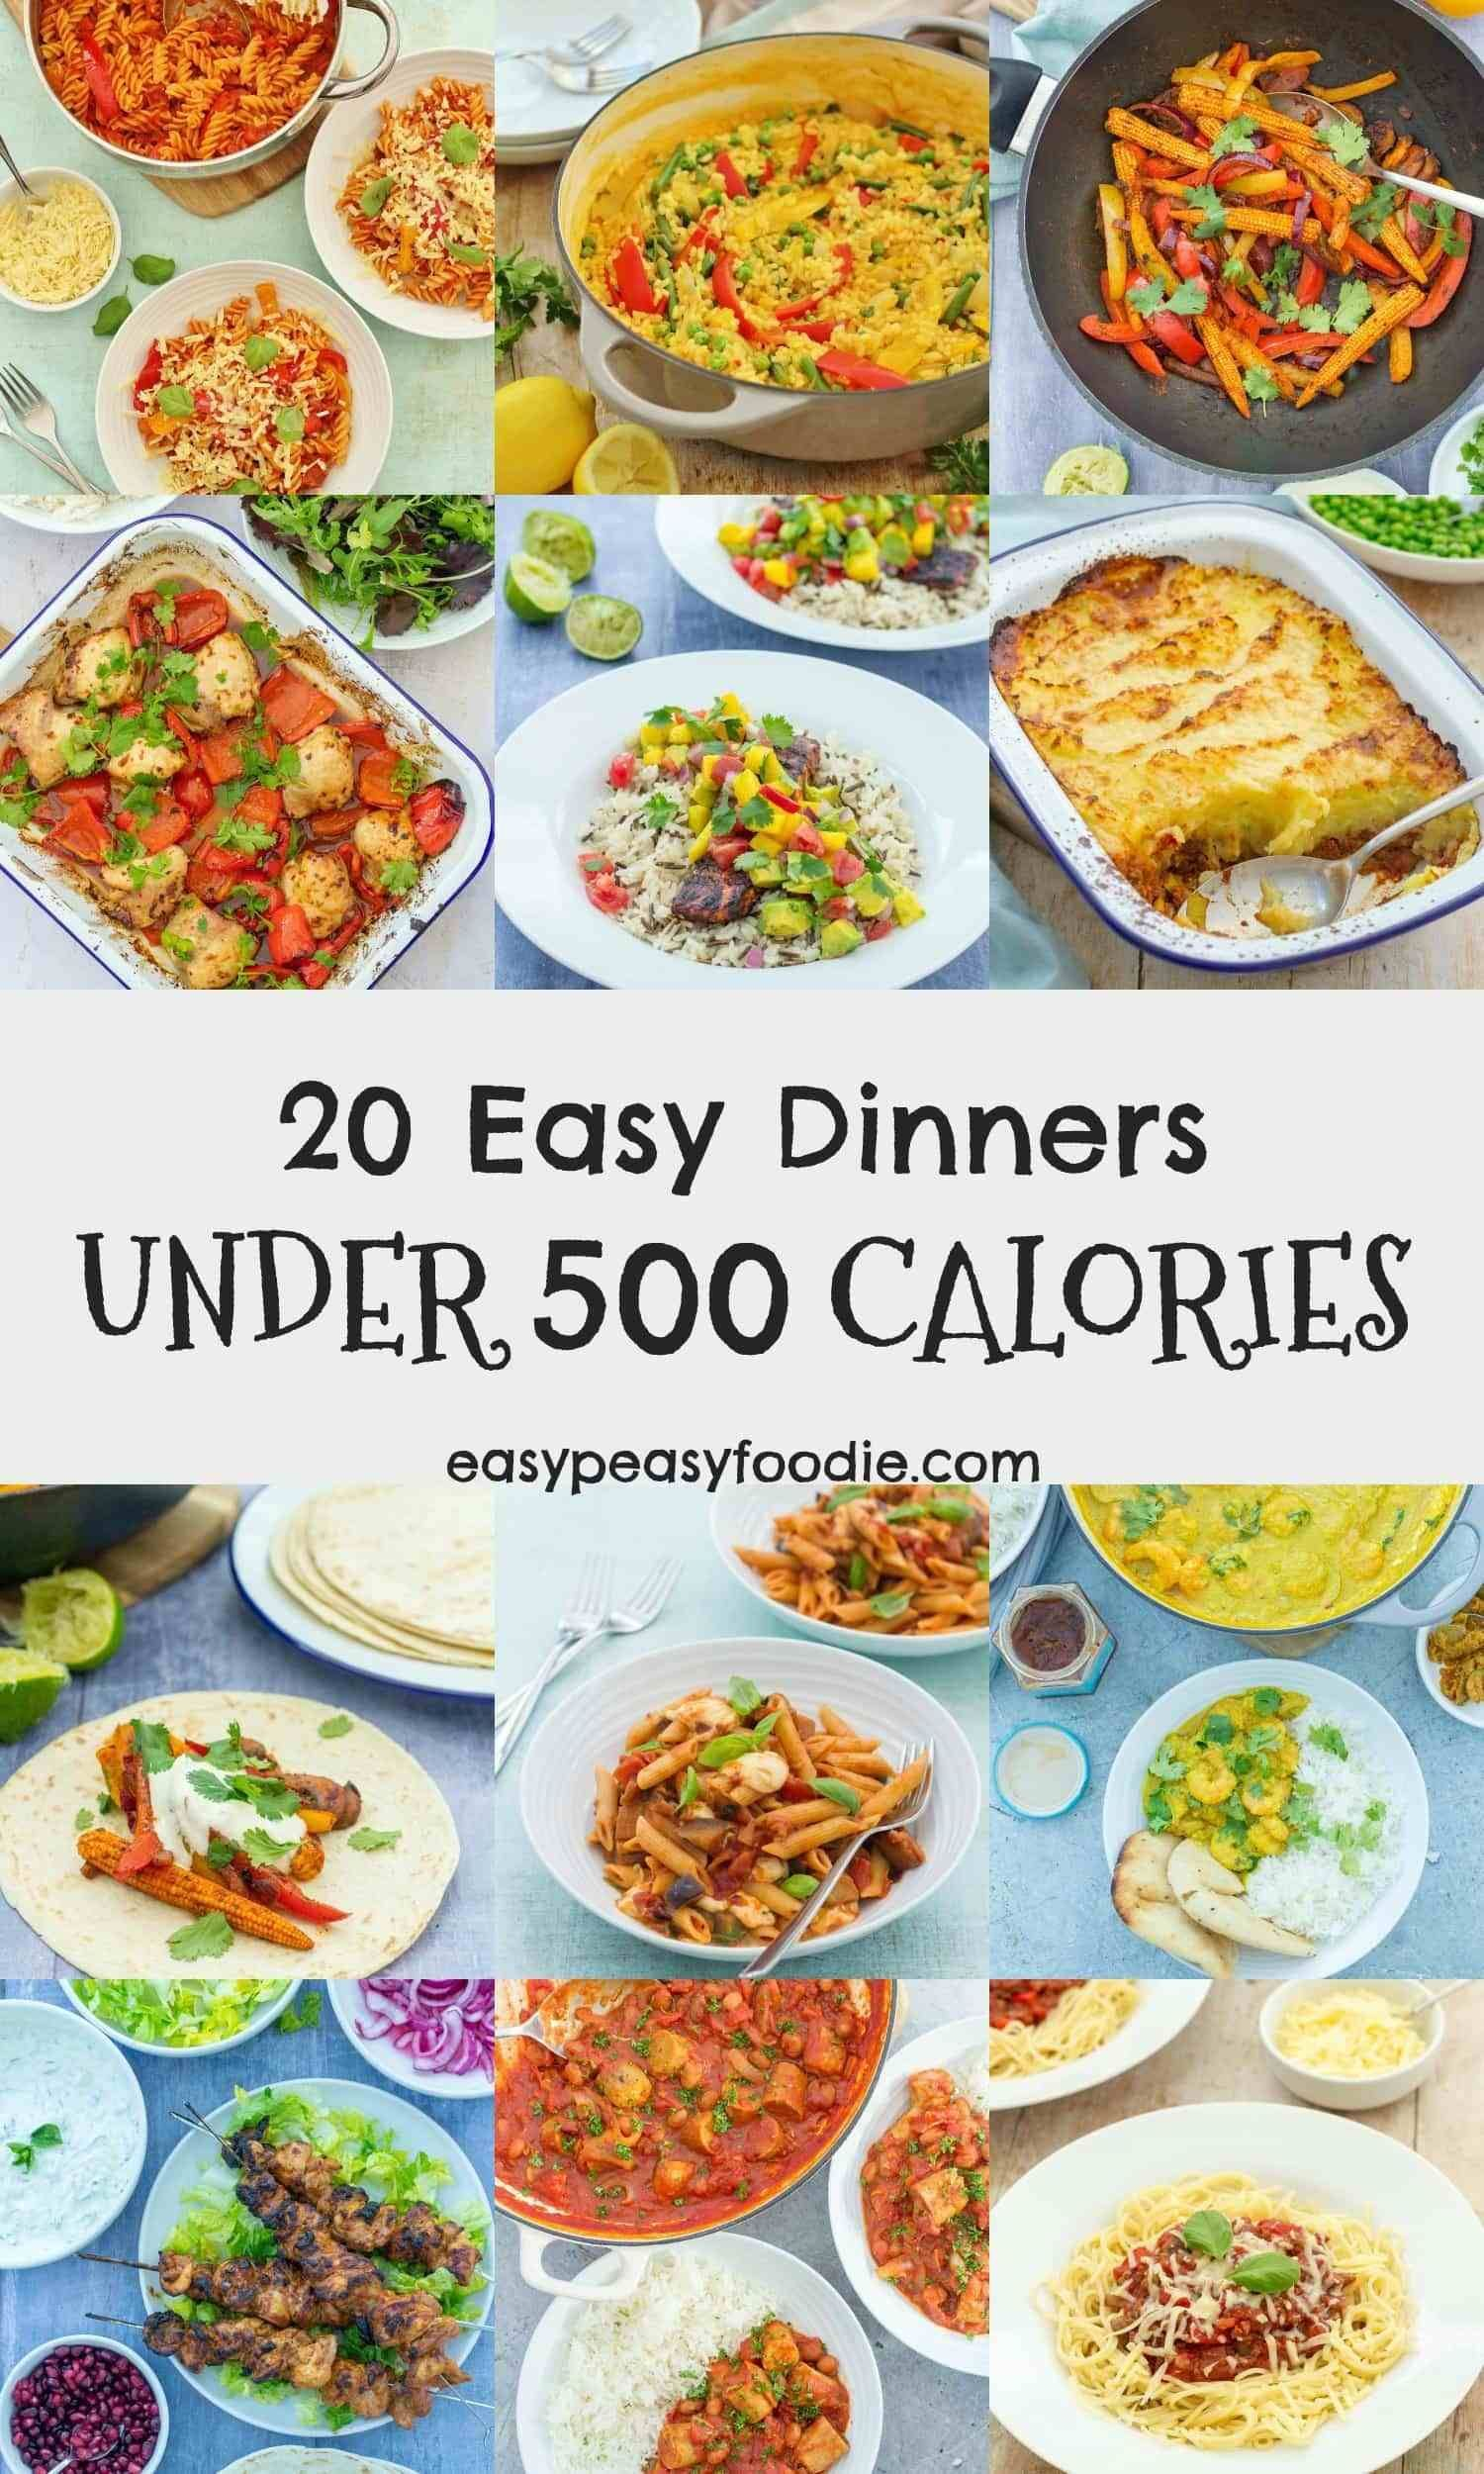 20 Easy Dinners Under 500 Calories Easydinners Looking To Eat More Healthily This Year Dinners Under 500 Calories Meals Under 500 Calories 500 Calorie Dinners